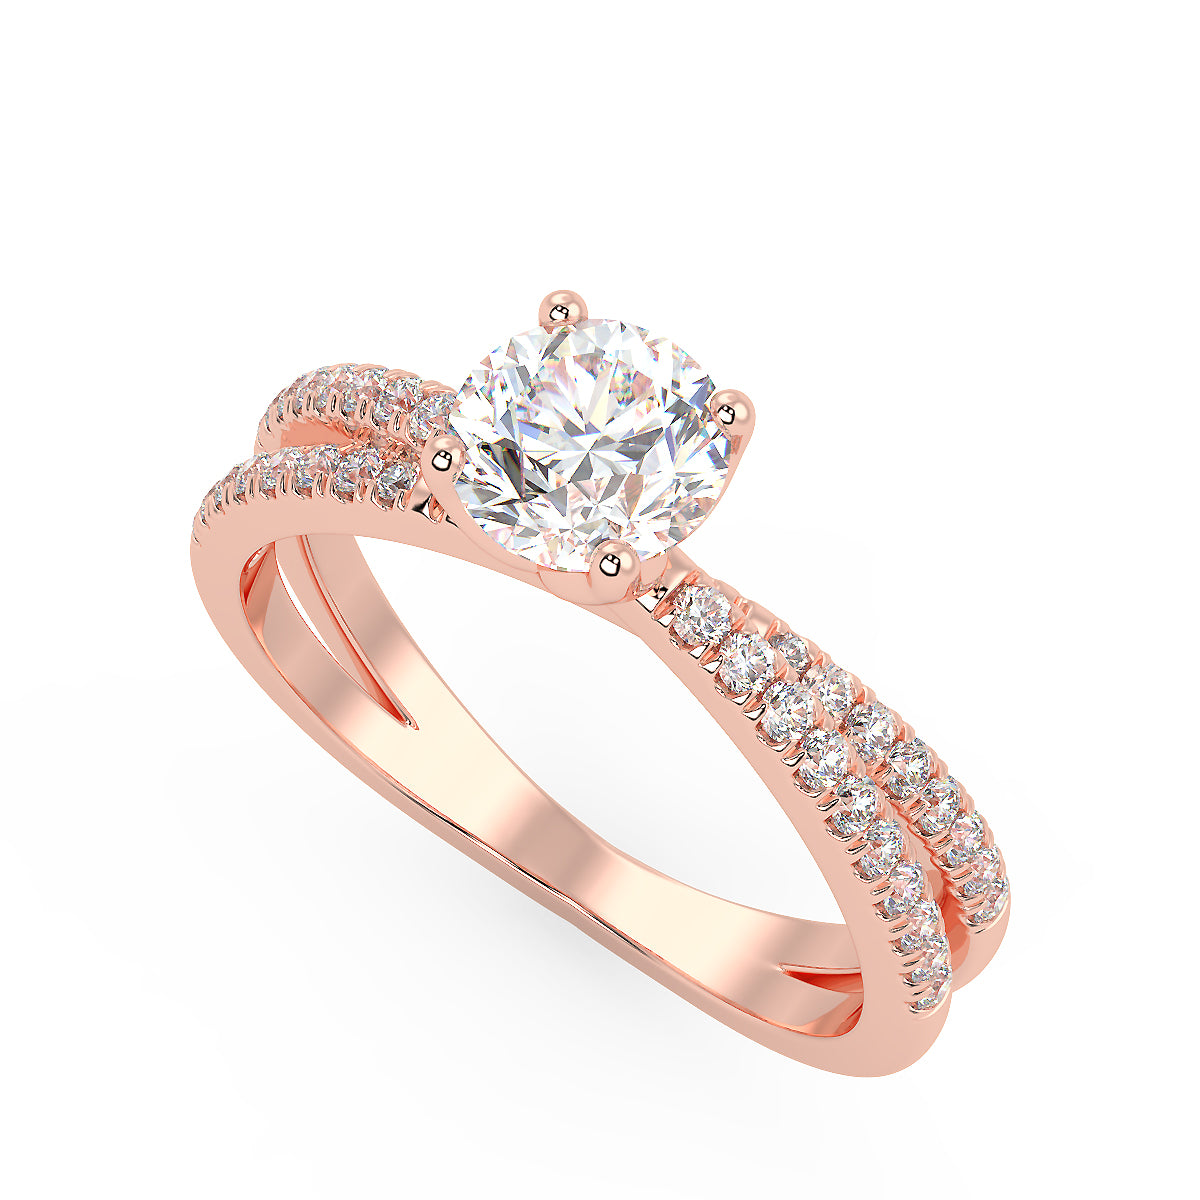 Capella Engagement Ring in Rose Gold